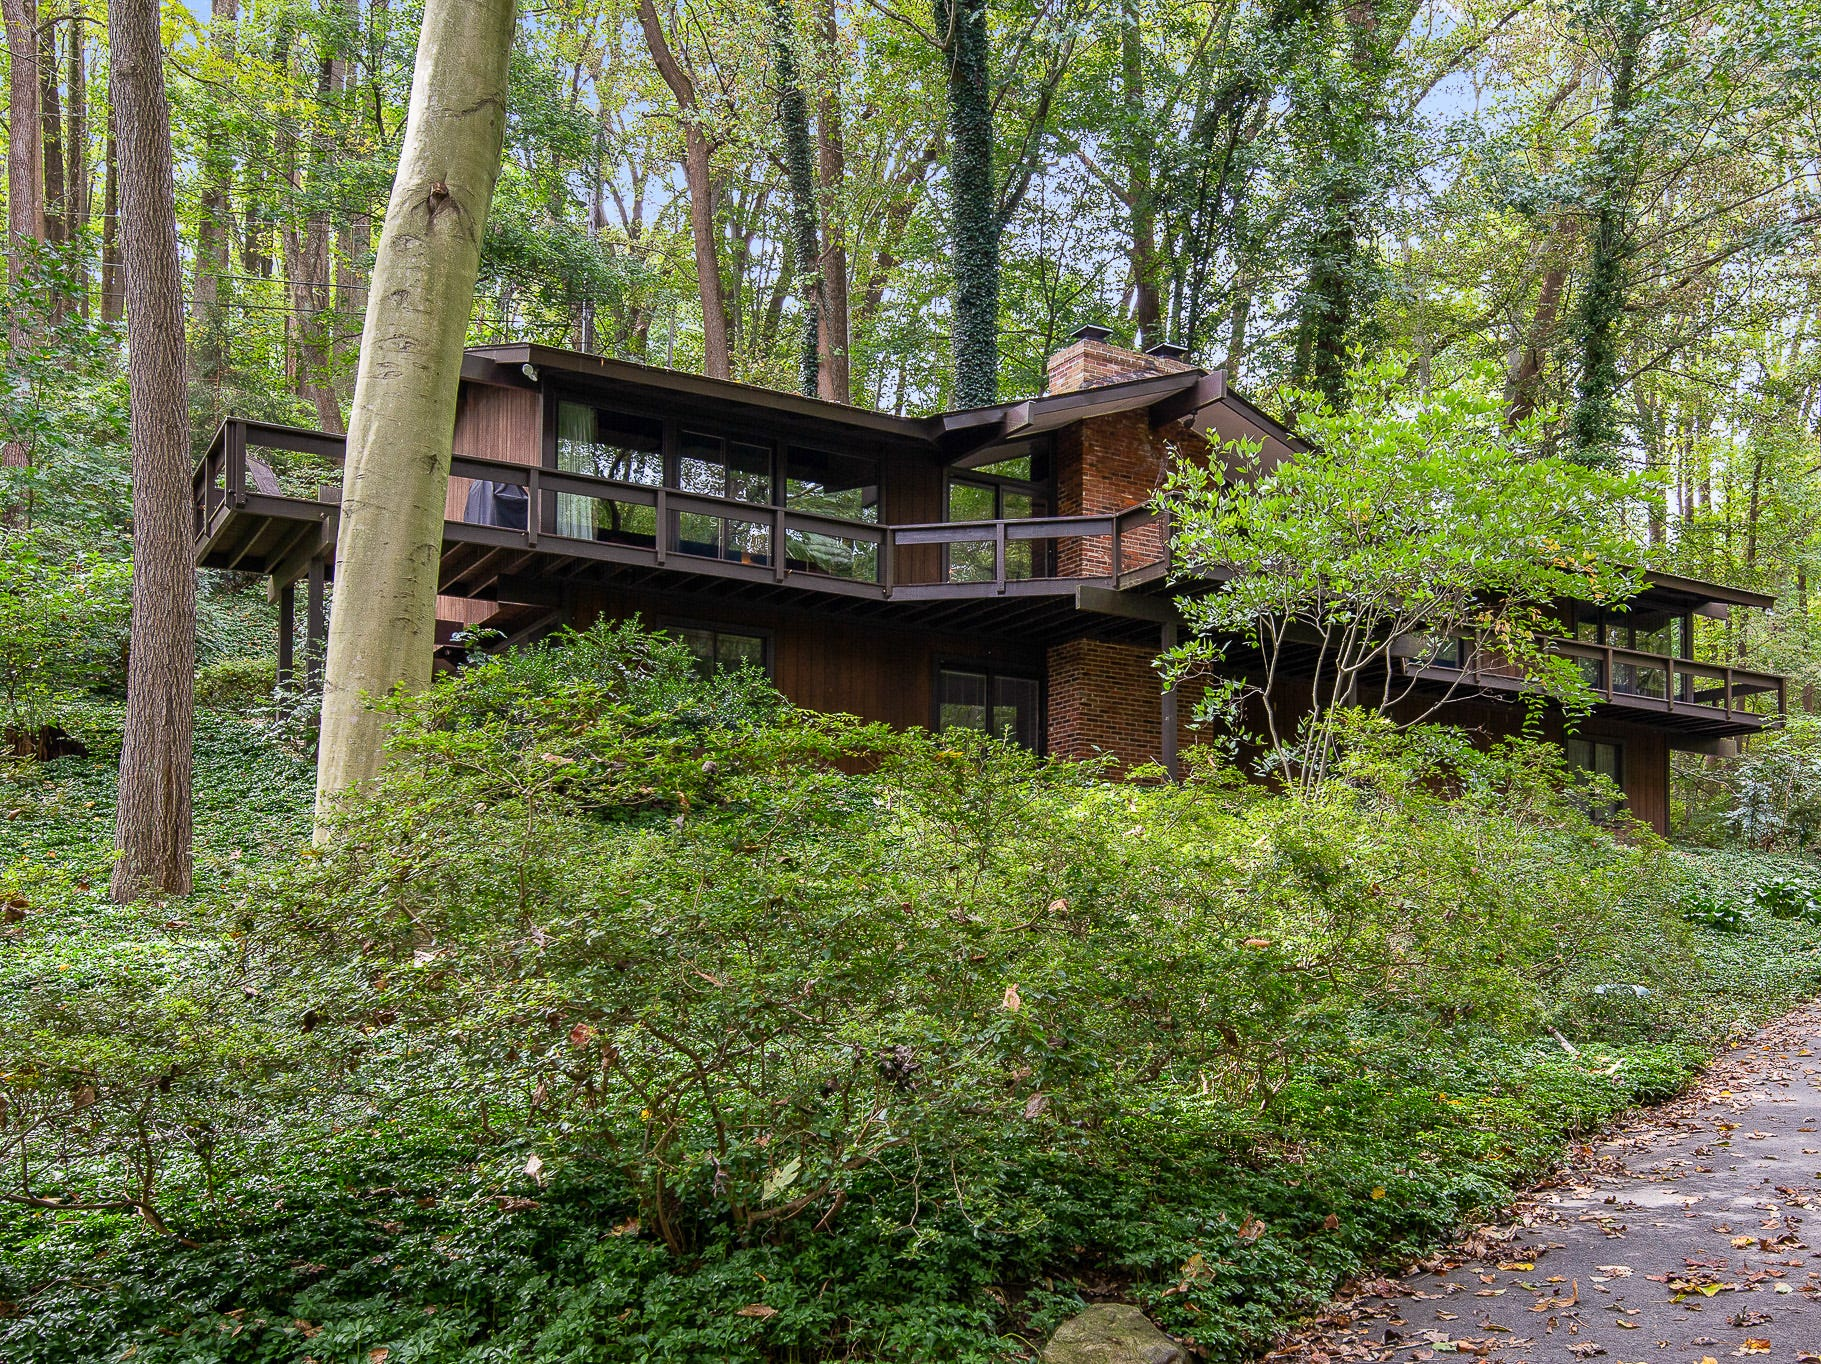 The mid-century modern home at 110 Thissell in Greenville is sited in mature trees and shrubs.